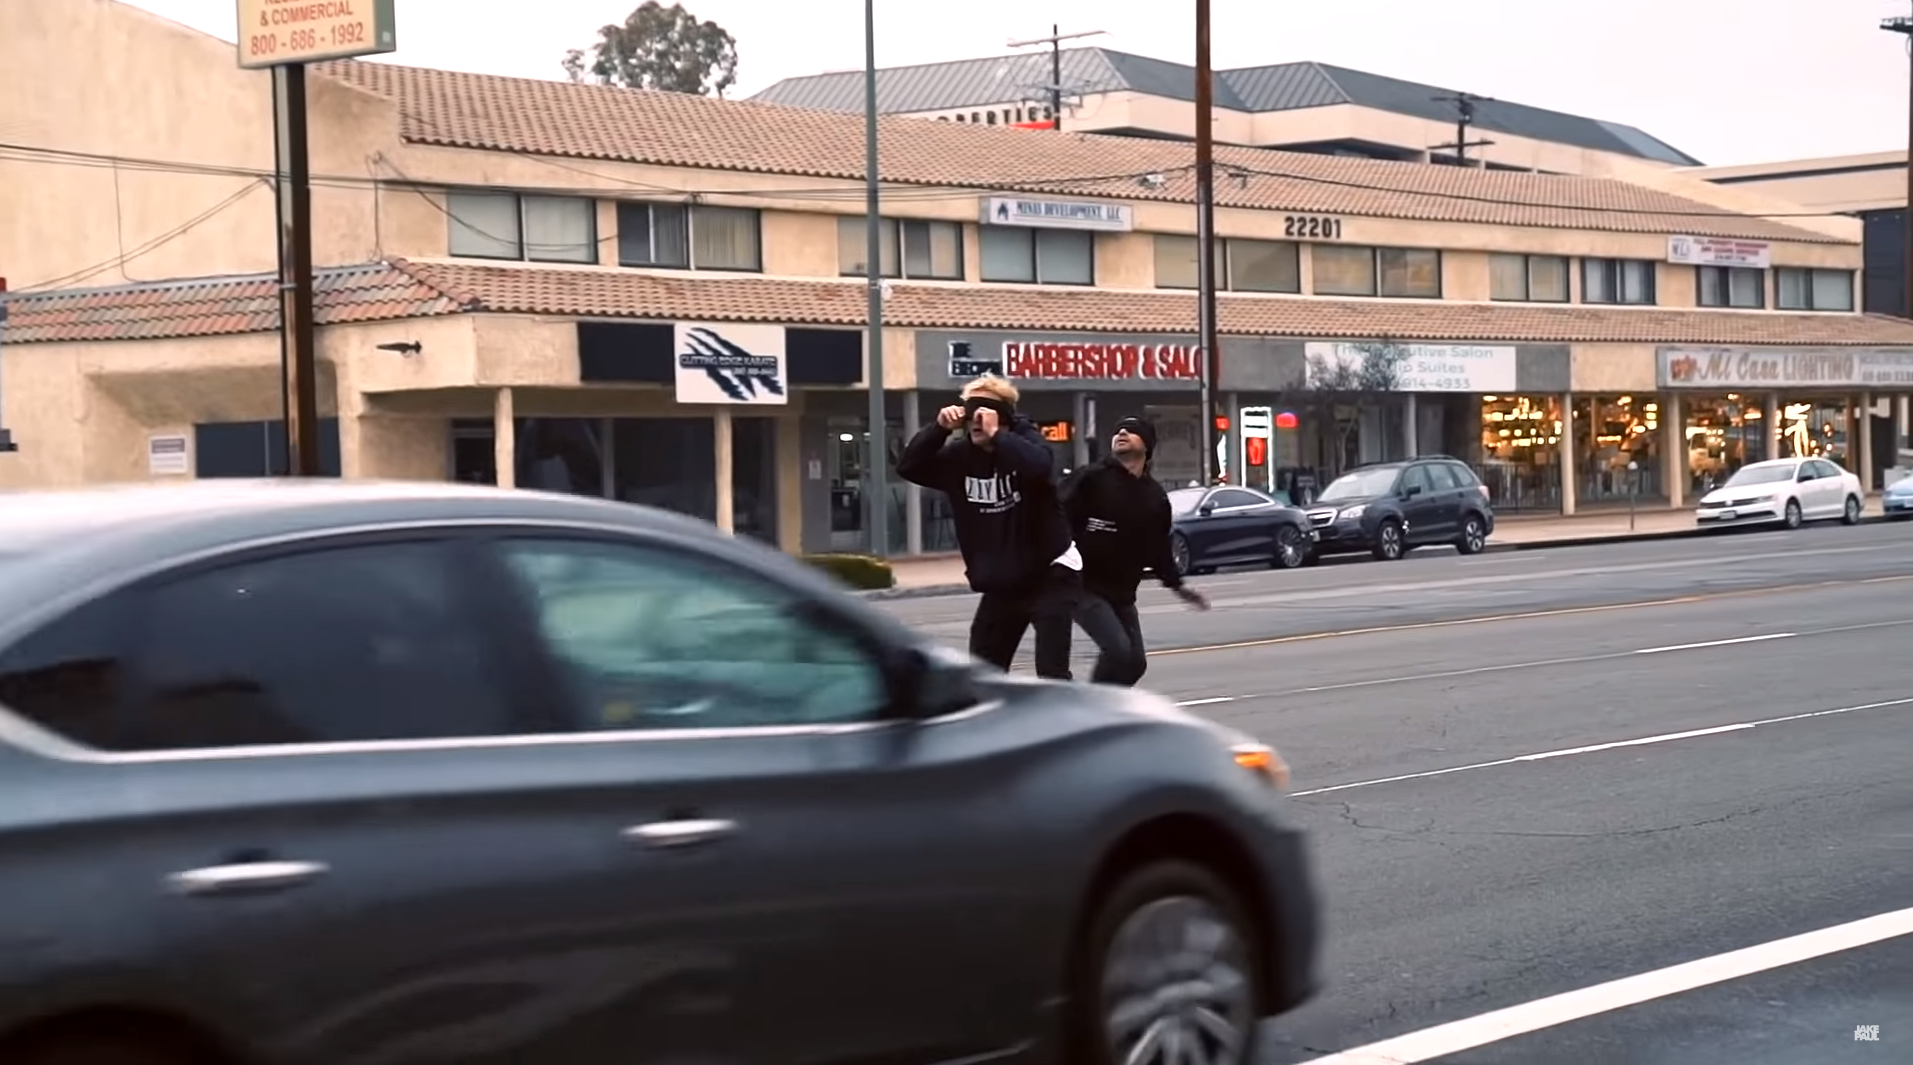 YouTube Arse Jake Paul Appears To Run Through Traffic Blindfolded For Bird Box Challenge